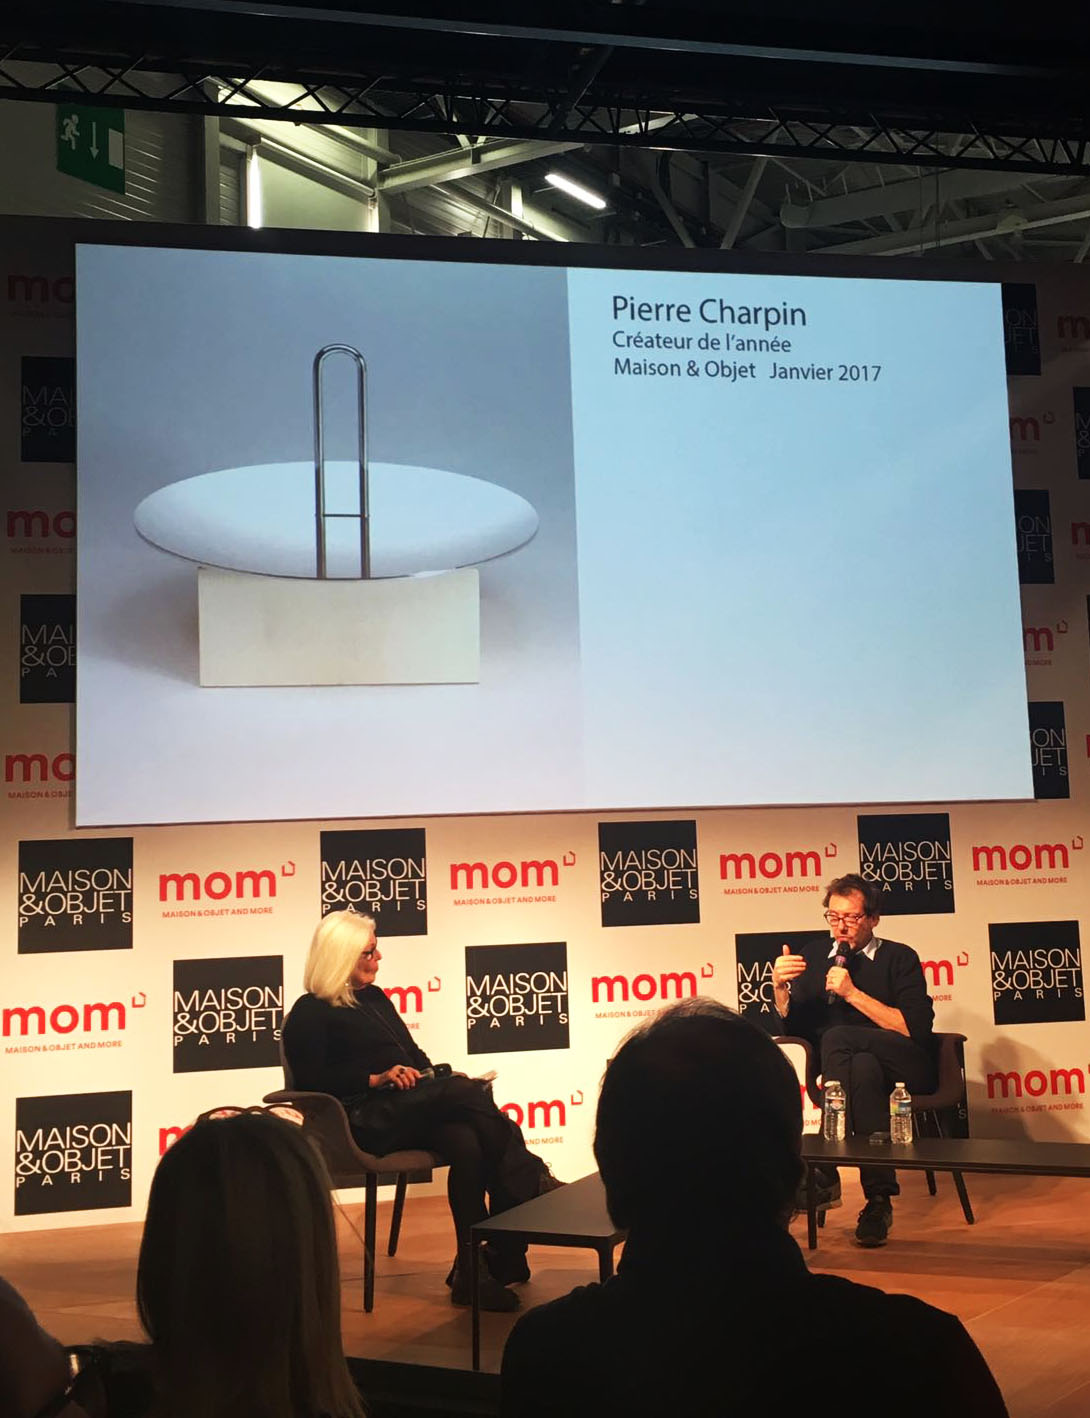 Important Lessons from Pierre Charpin at Maison et Objet Paris 2017 pierre charpin Important Lessons from Pierre Charpin at Maison et Objet Paris 2017 maison et objet paris pierre charpin3